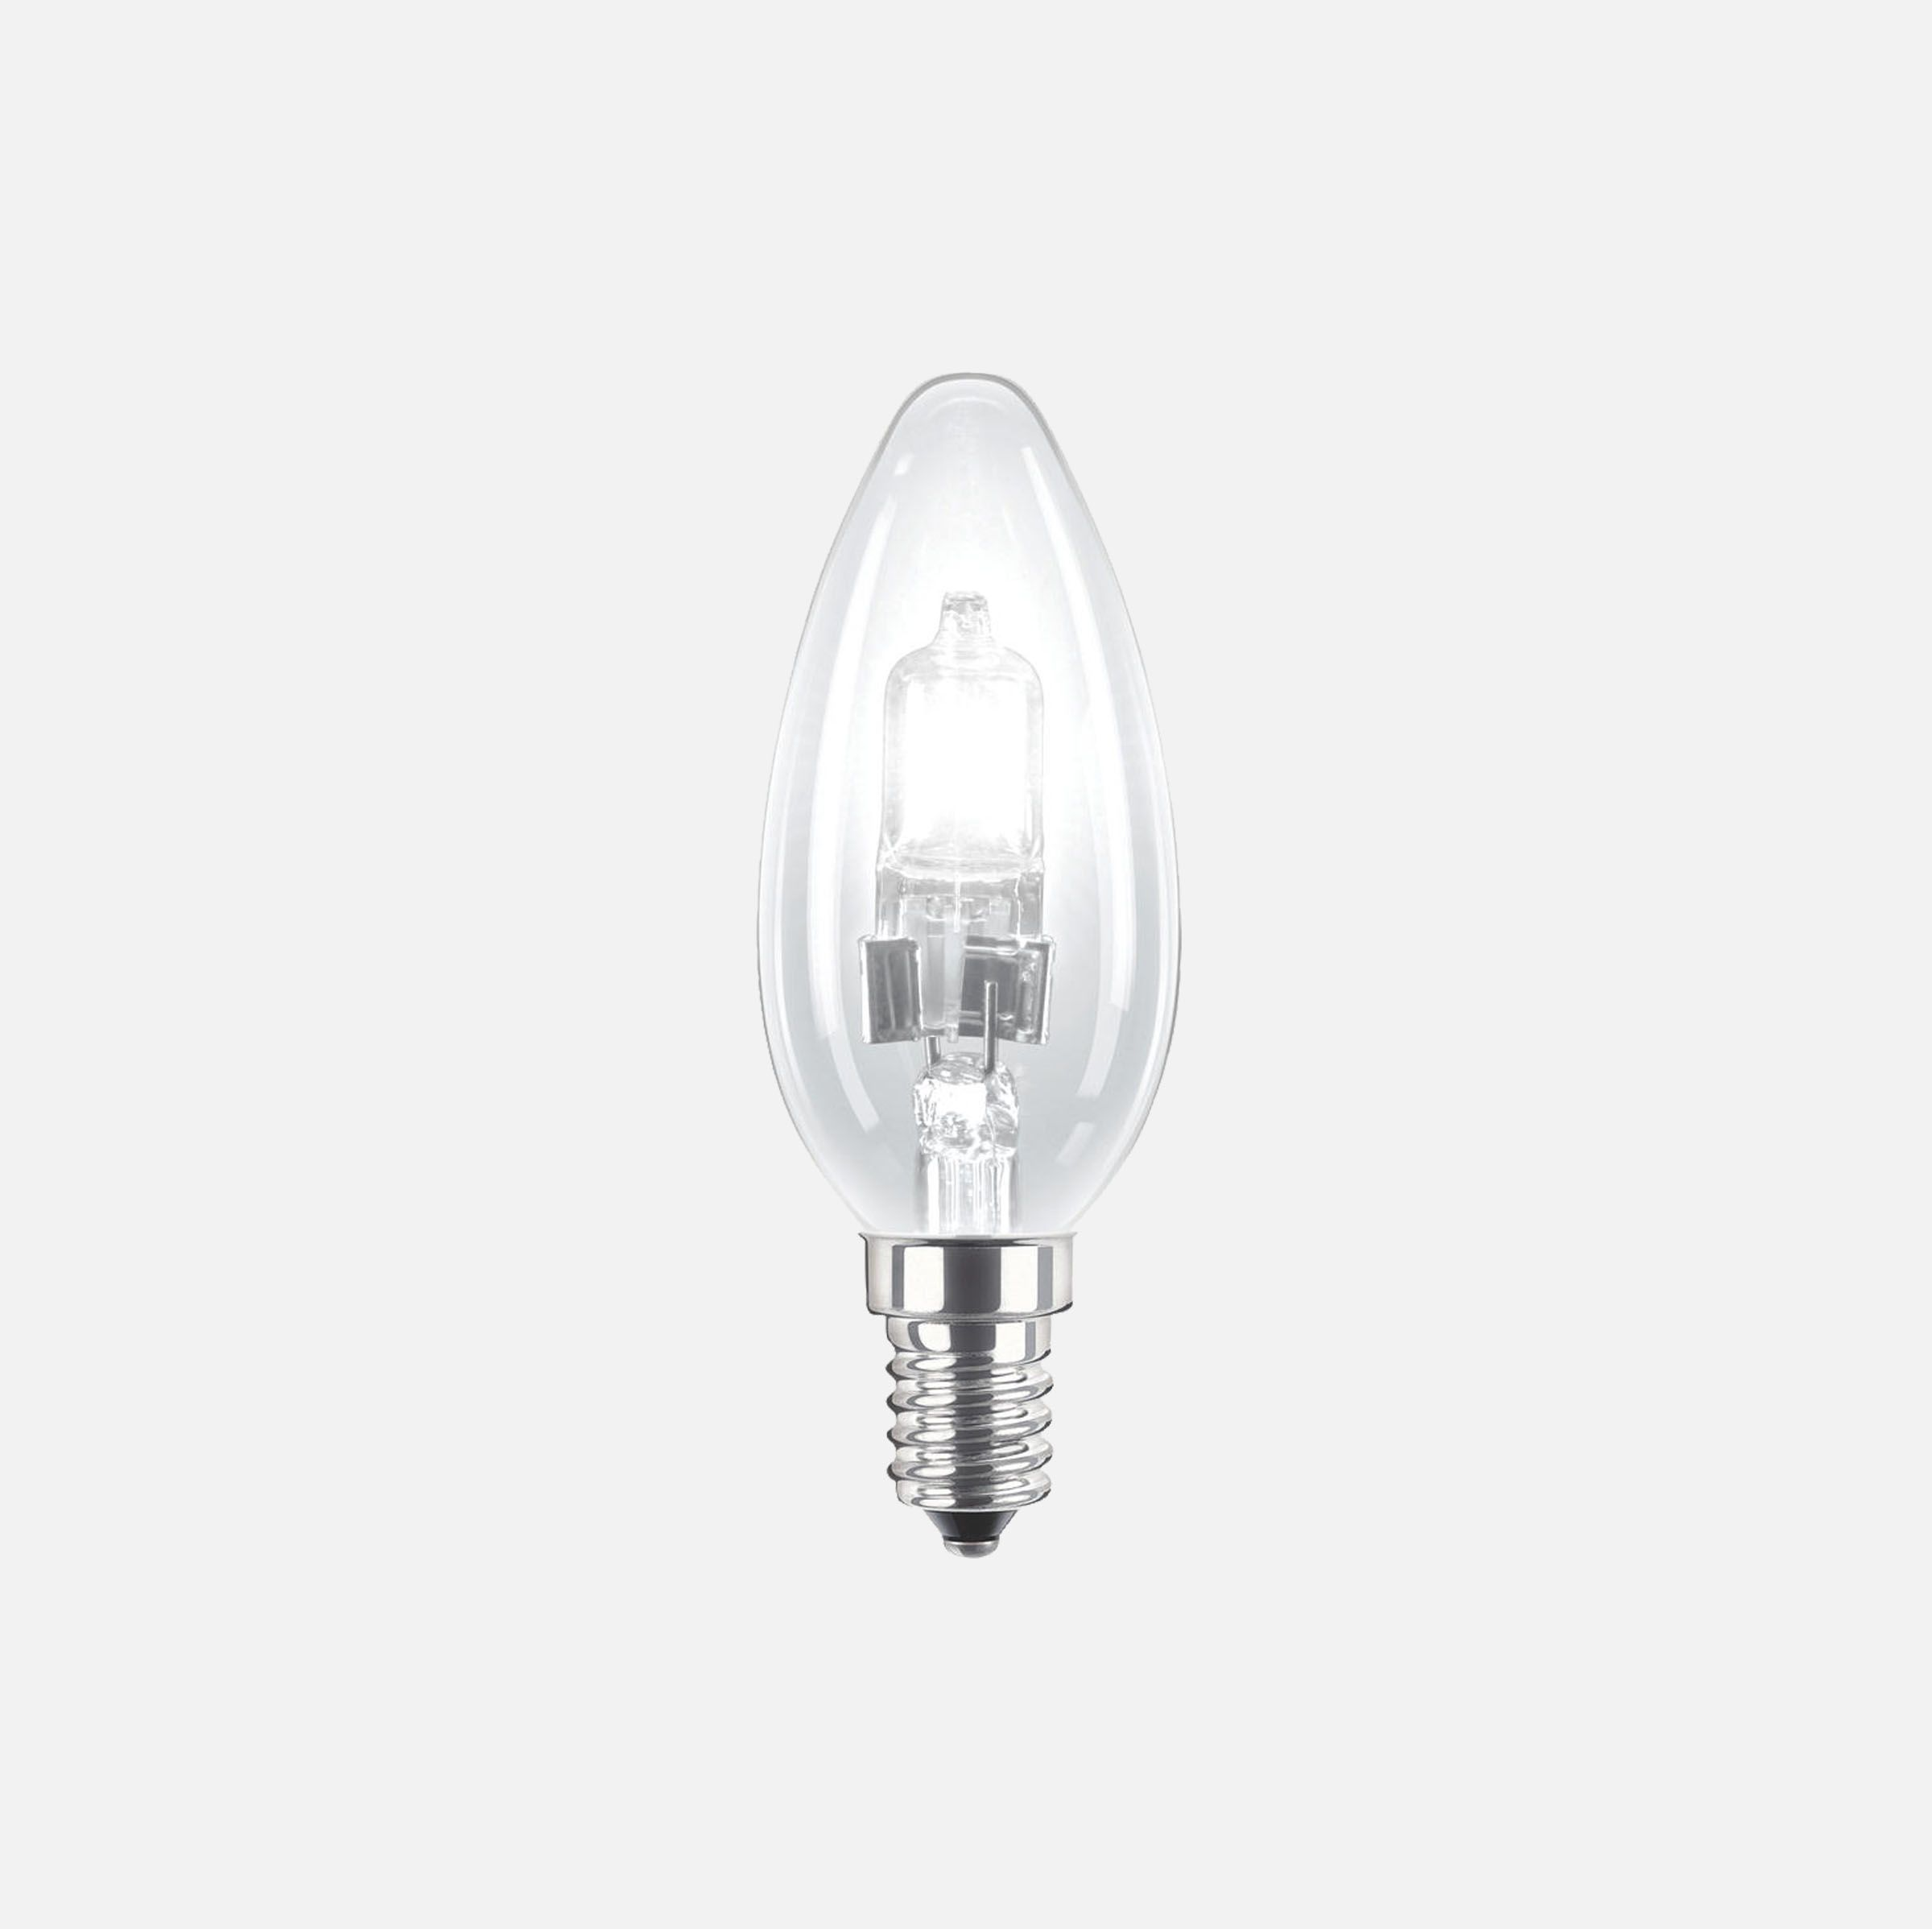 1 x 60 watt max e14 small edison screw ses candle bulb